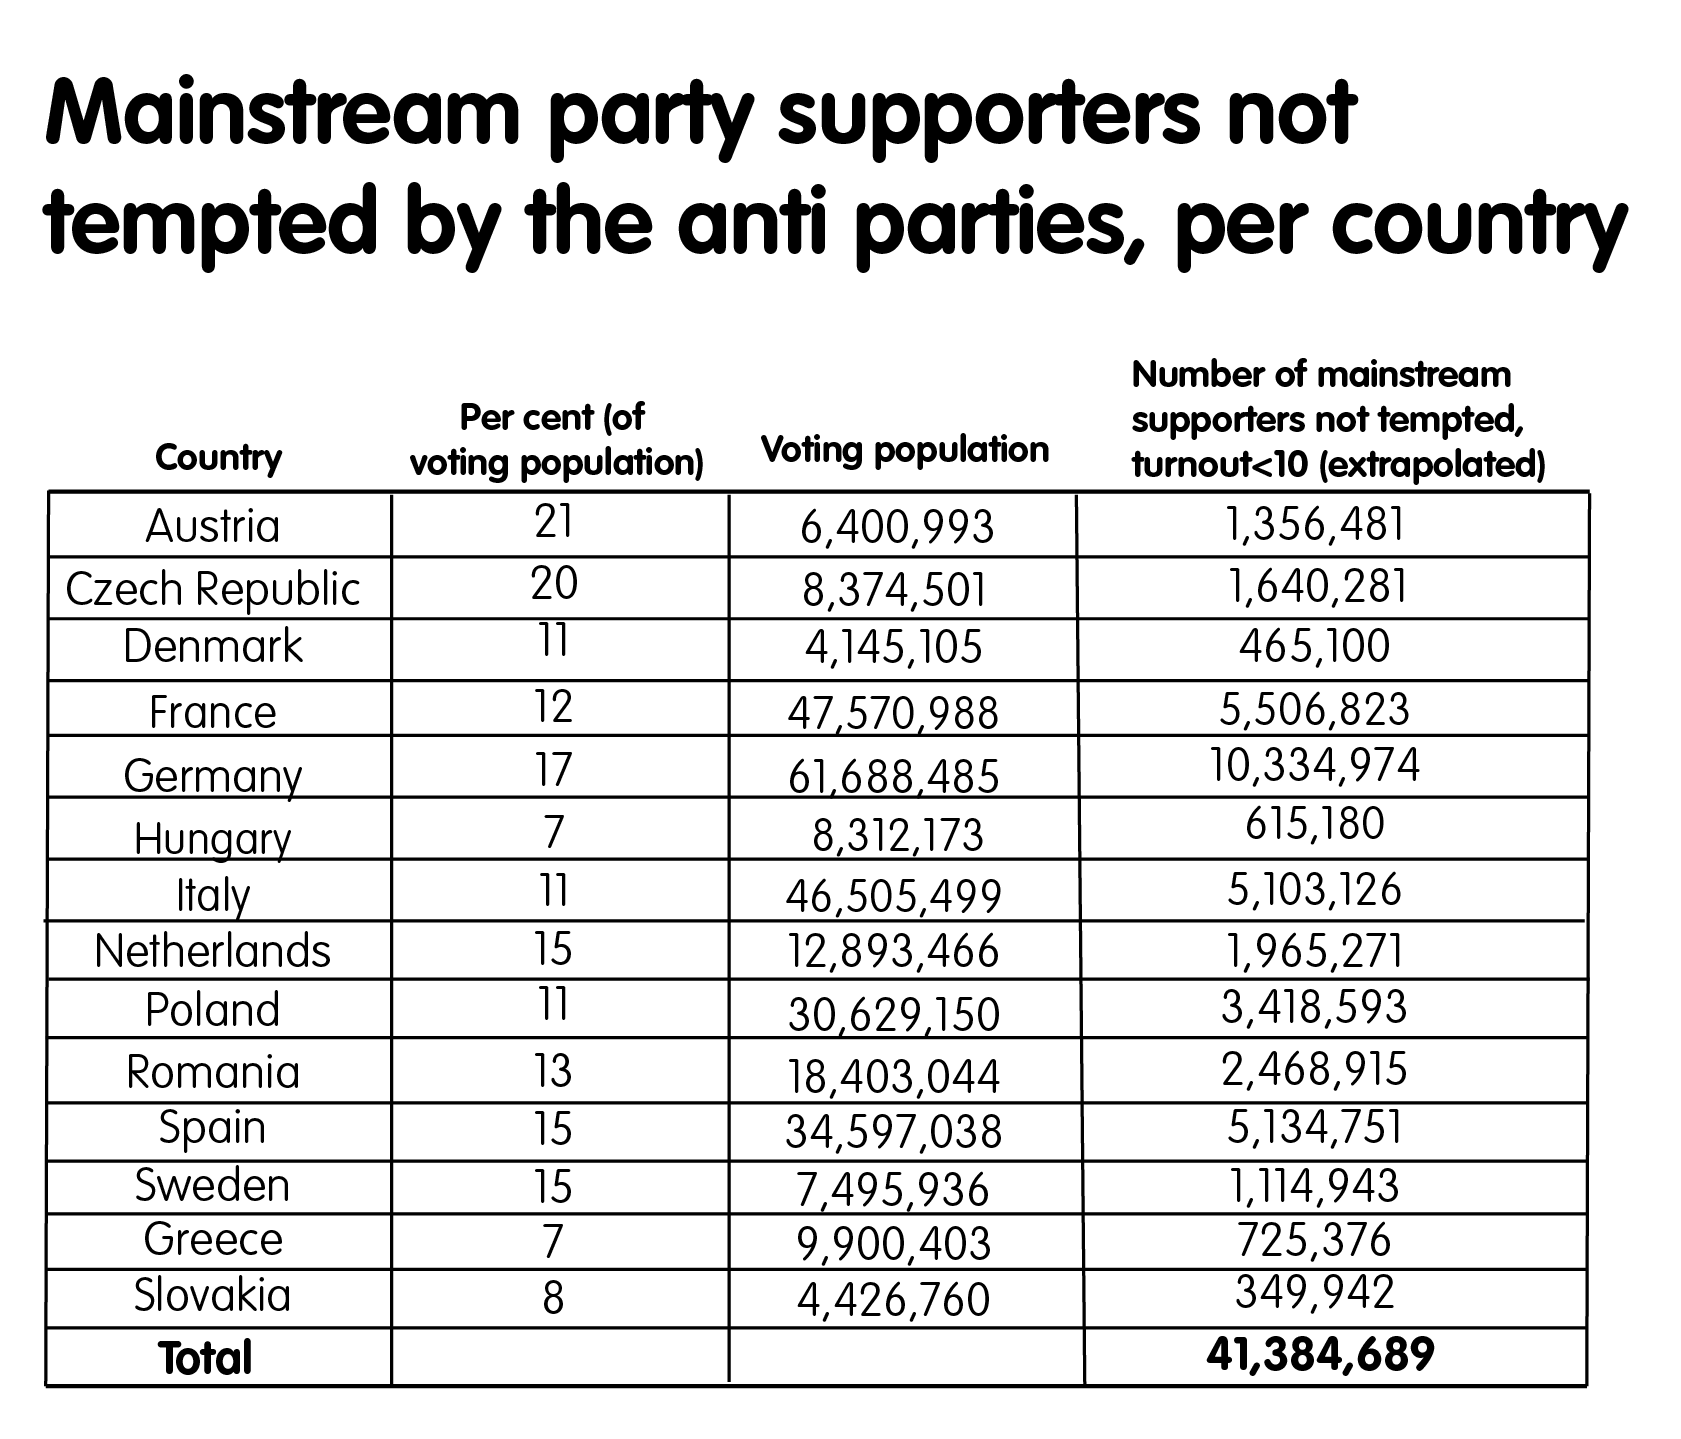 Mainstream party supporters not tempted by the anti parties, per country